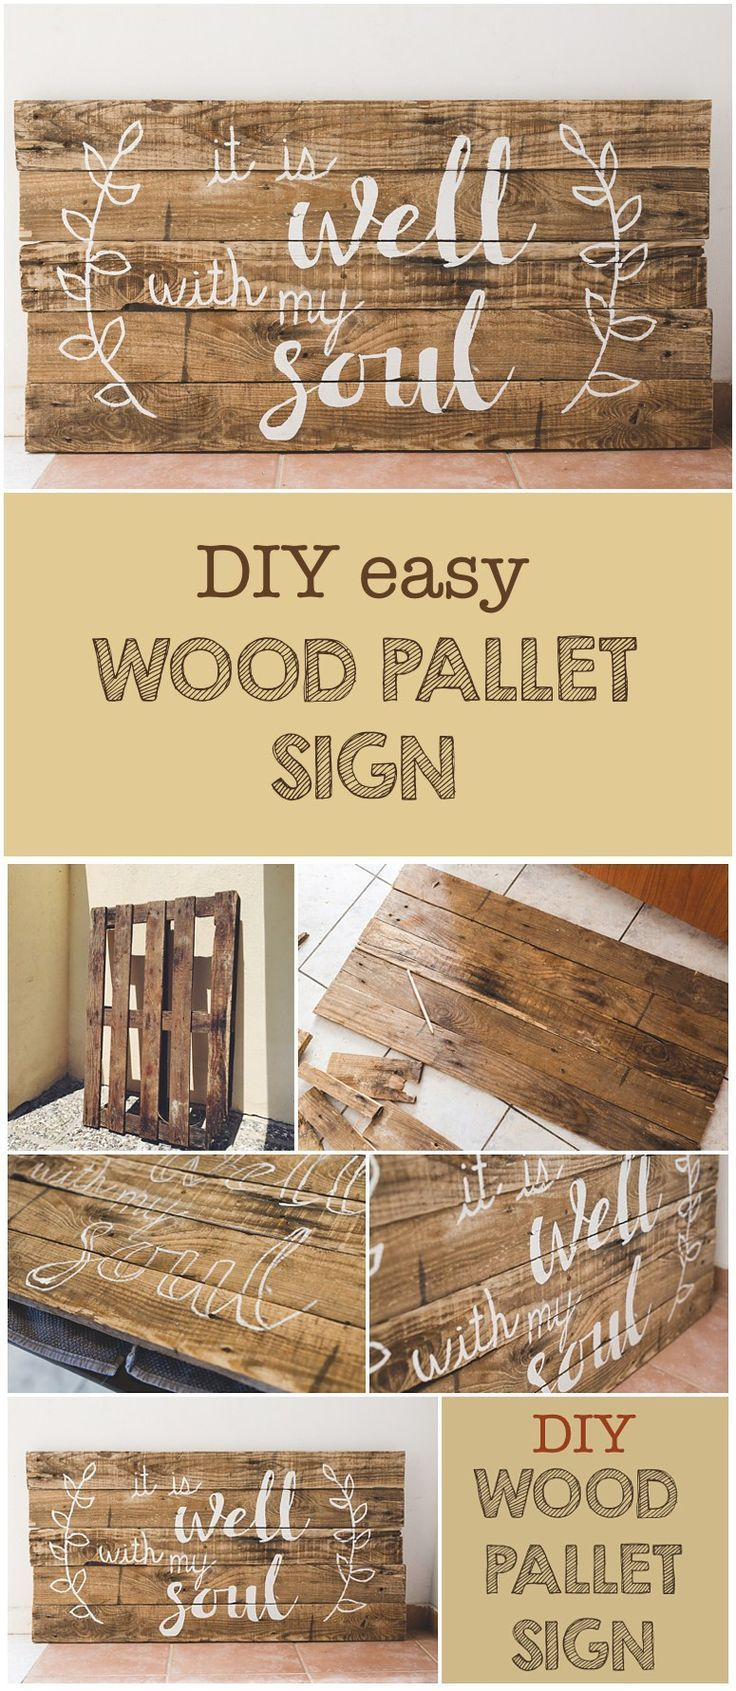 DIY Wood Pallet Sign AND Free Printable